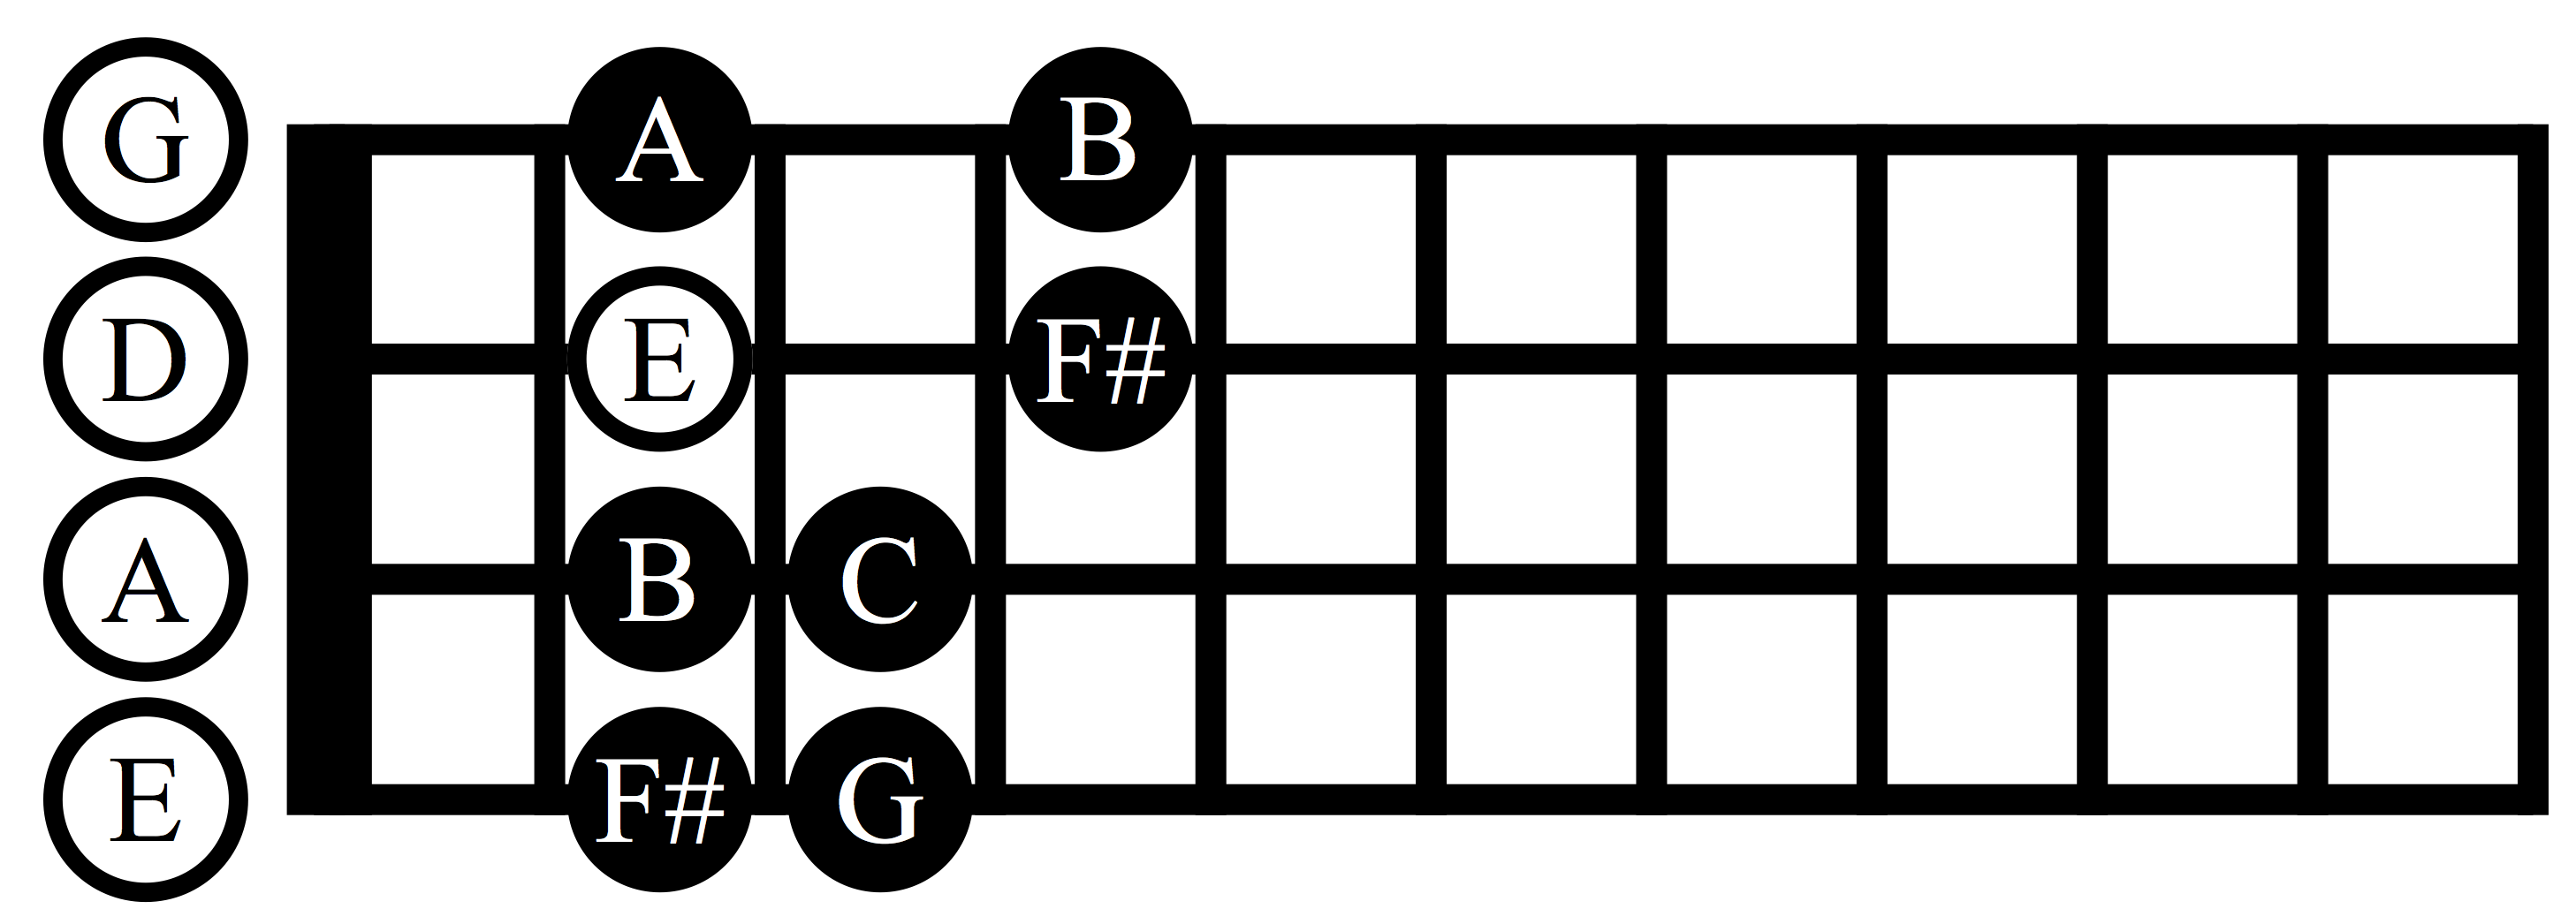 e minor scale bass guitar